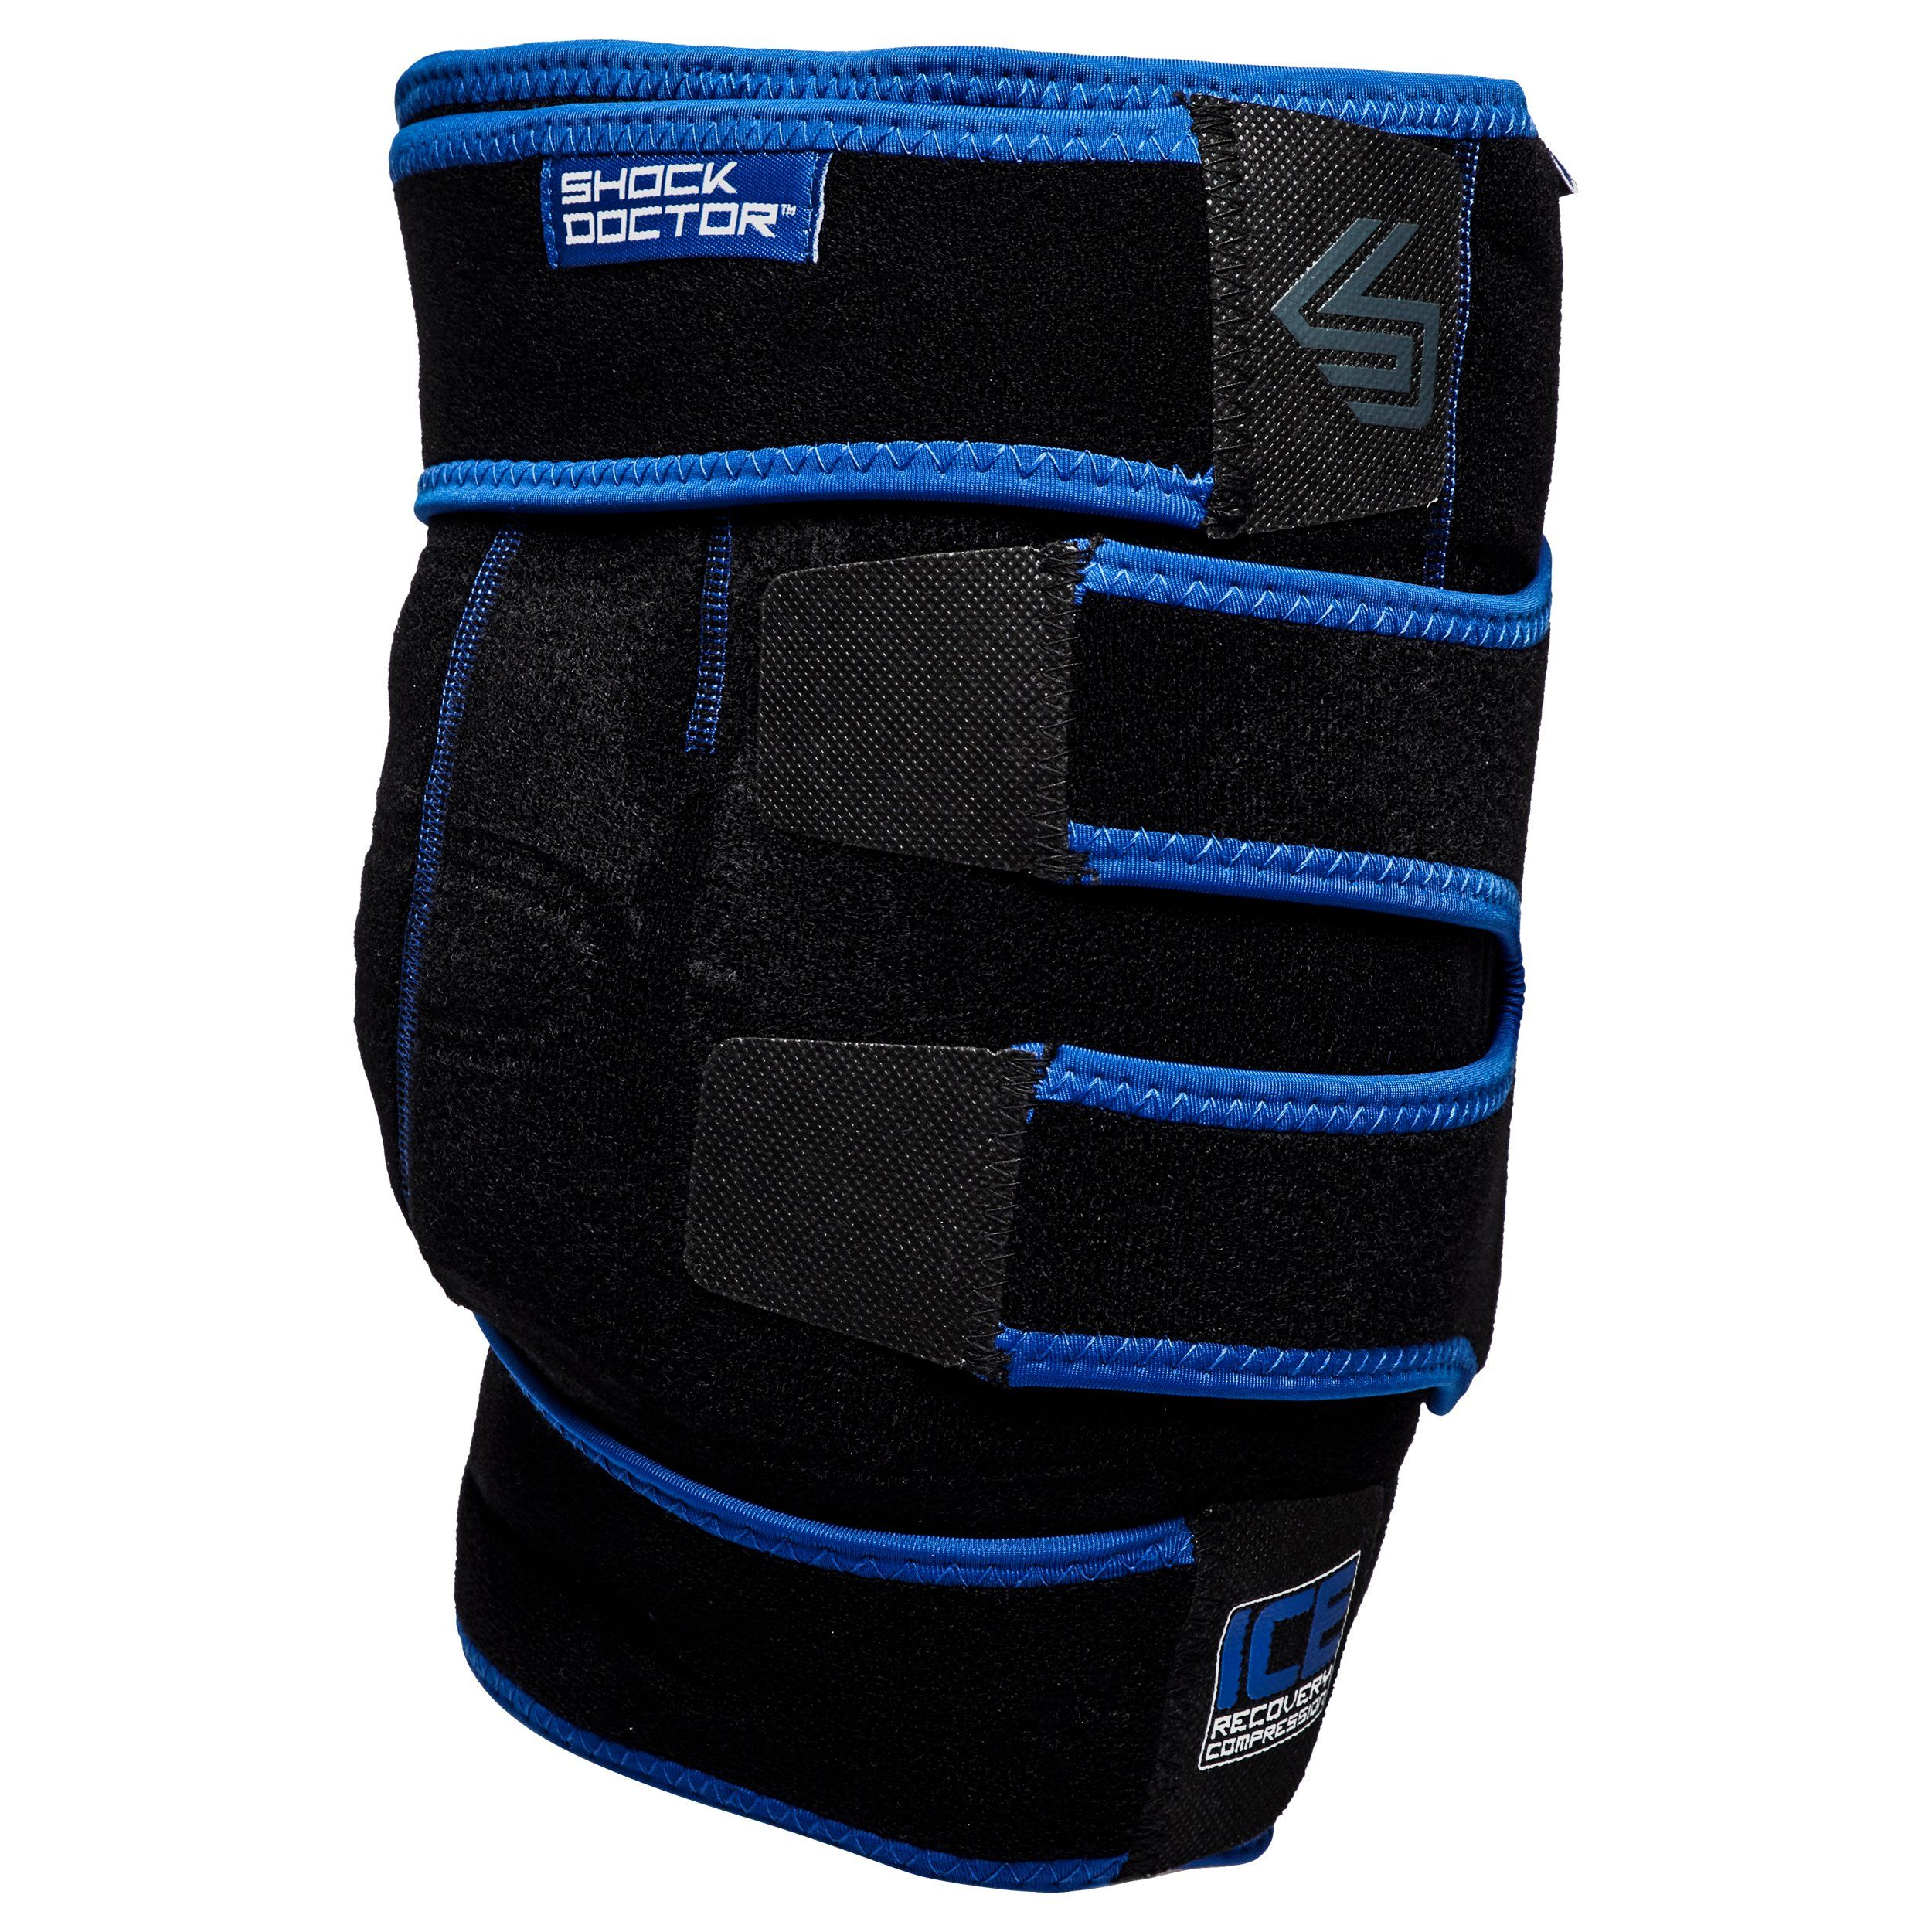 Shock Doctor Ice Recovery Compression Knee Wrap